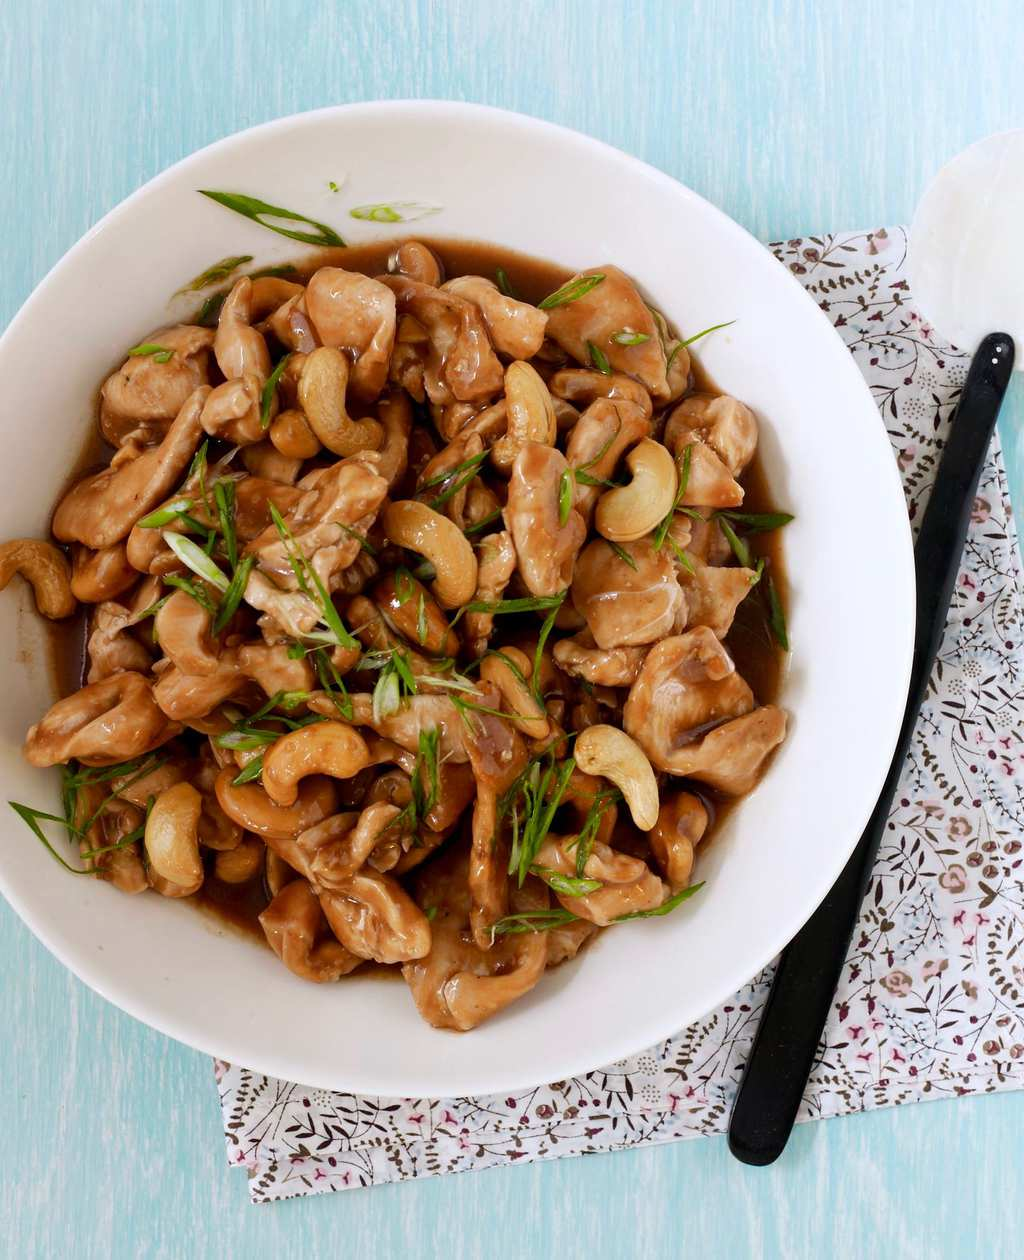 Chinese Chicken with cashew nuts in a white bowl